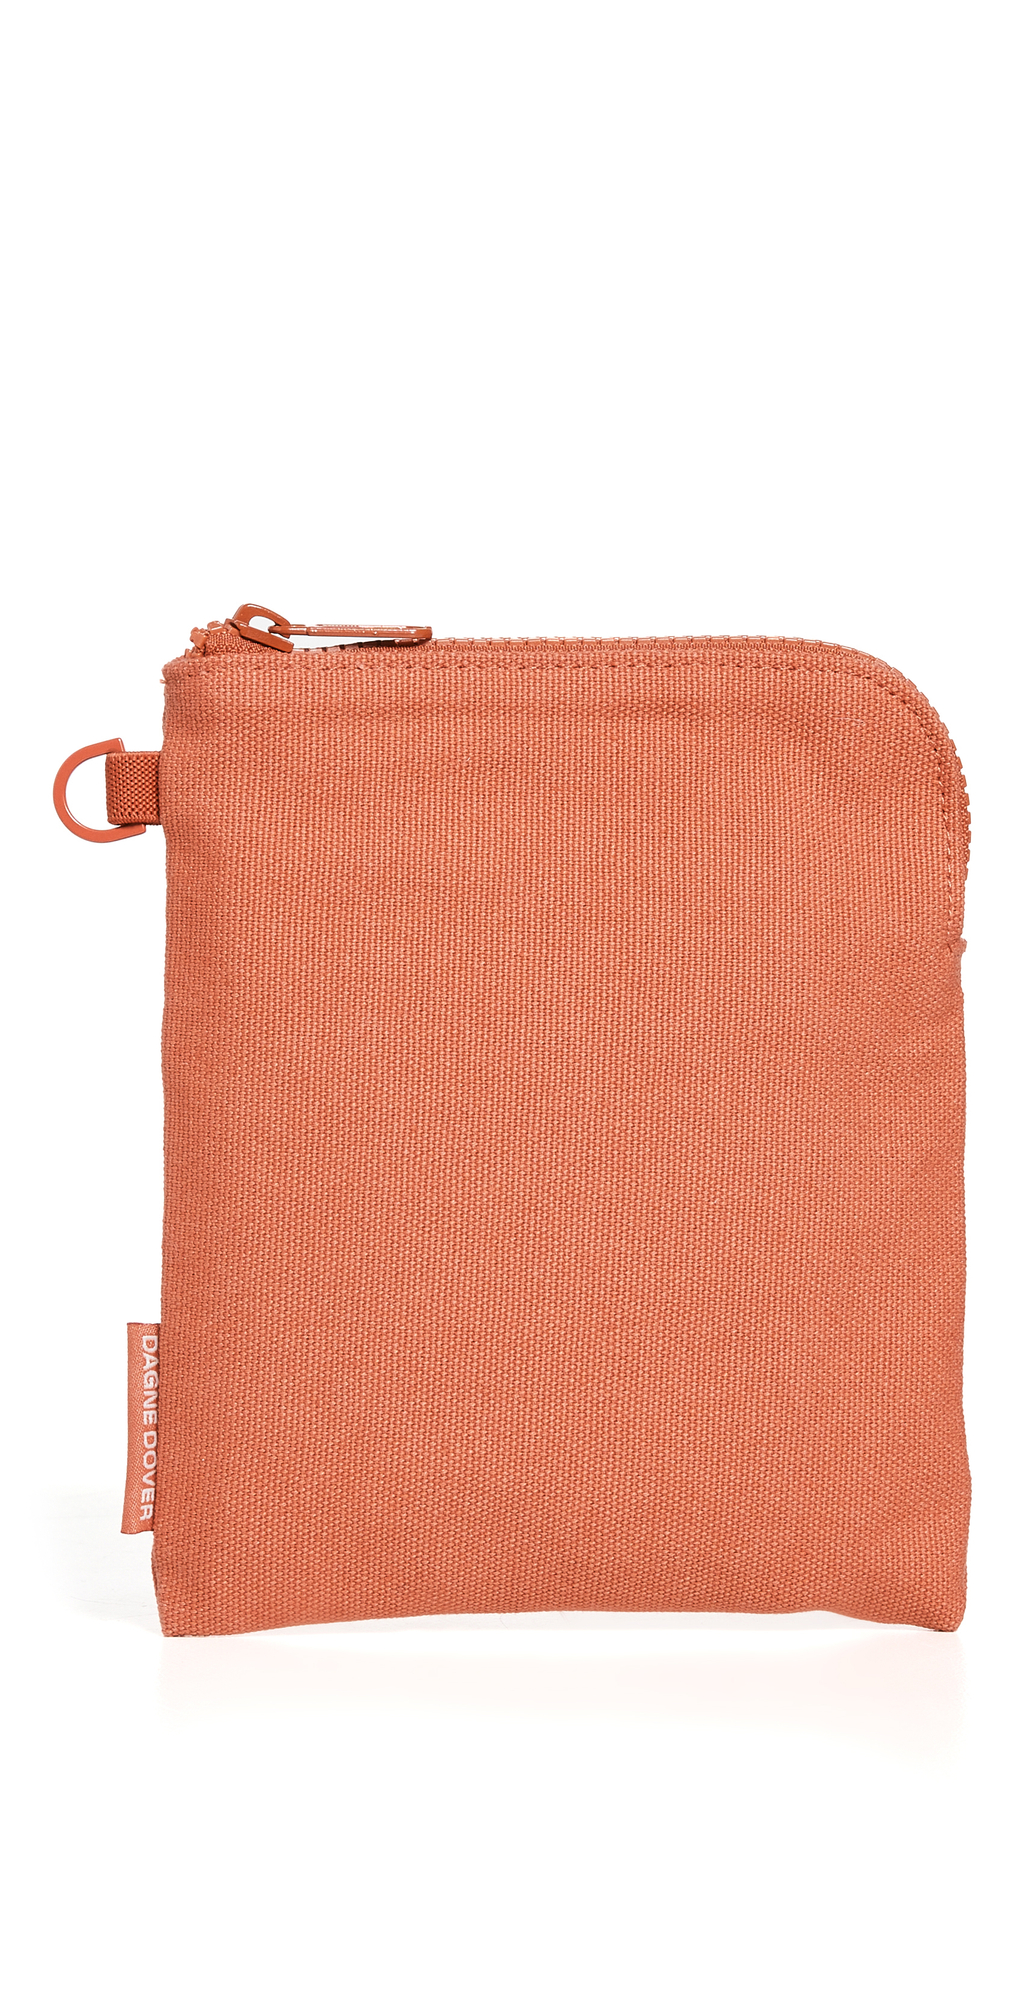 Skye Essentials Pouch Small